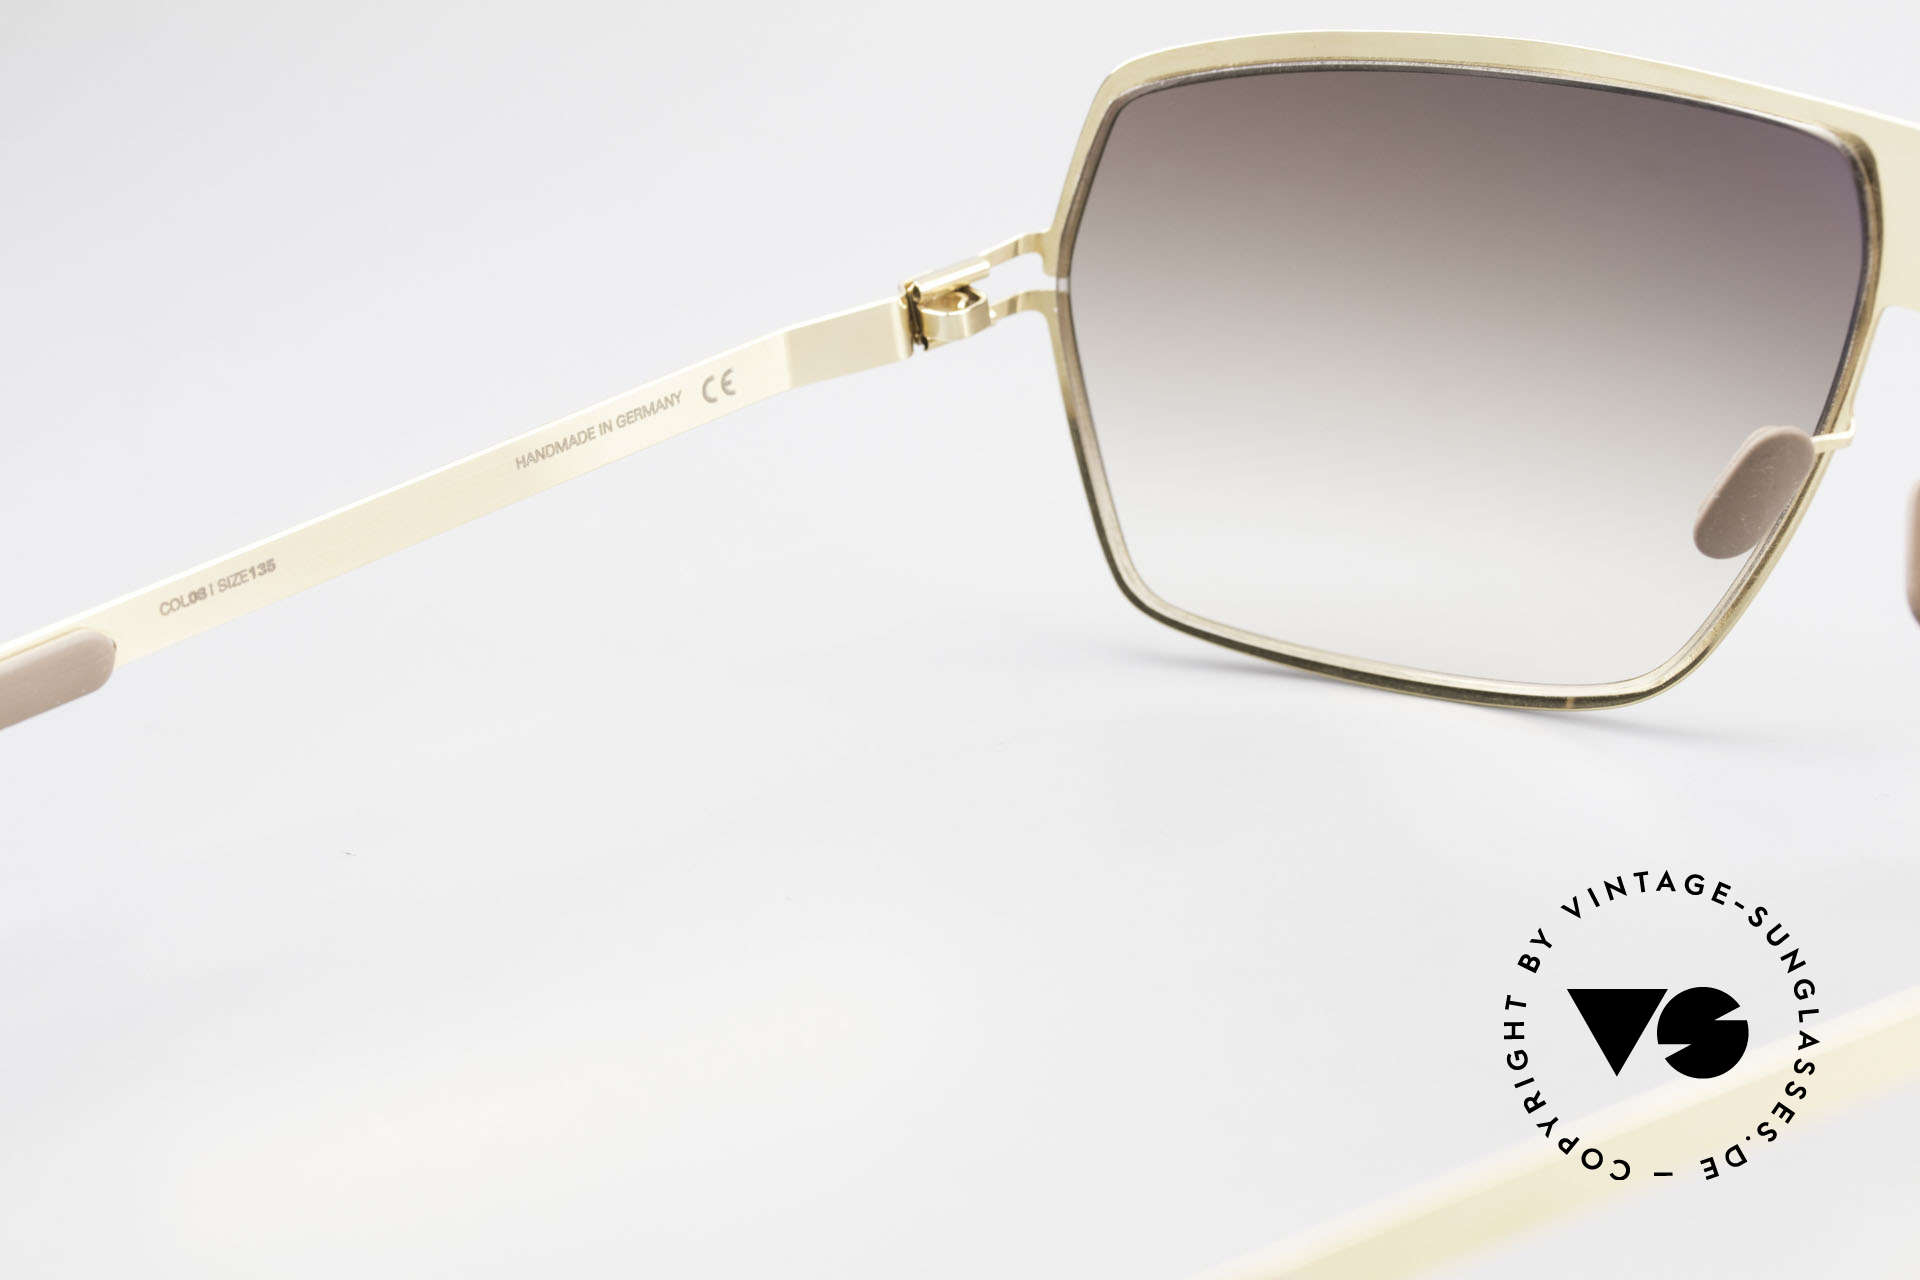 Mykita Rock Vintage No 1 Collection 2009, worn by many celebs (rare & in high demand, meanwhile), Made for Men